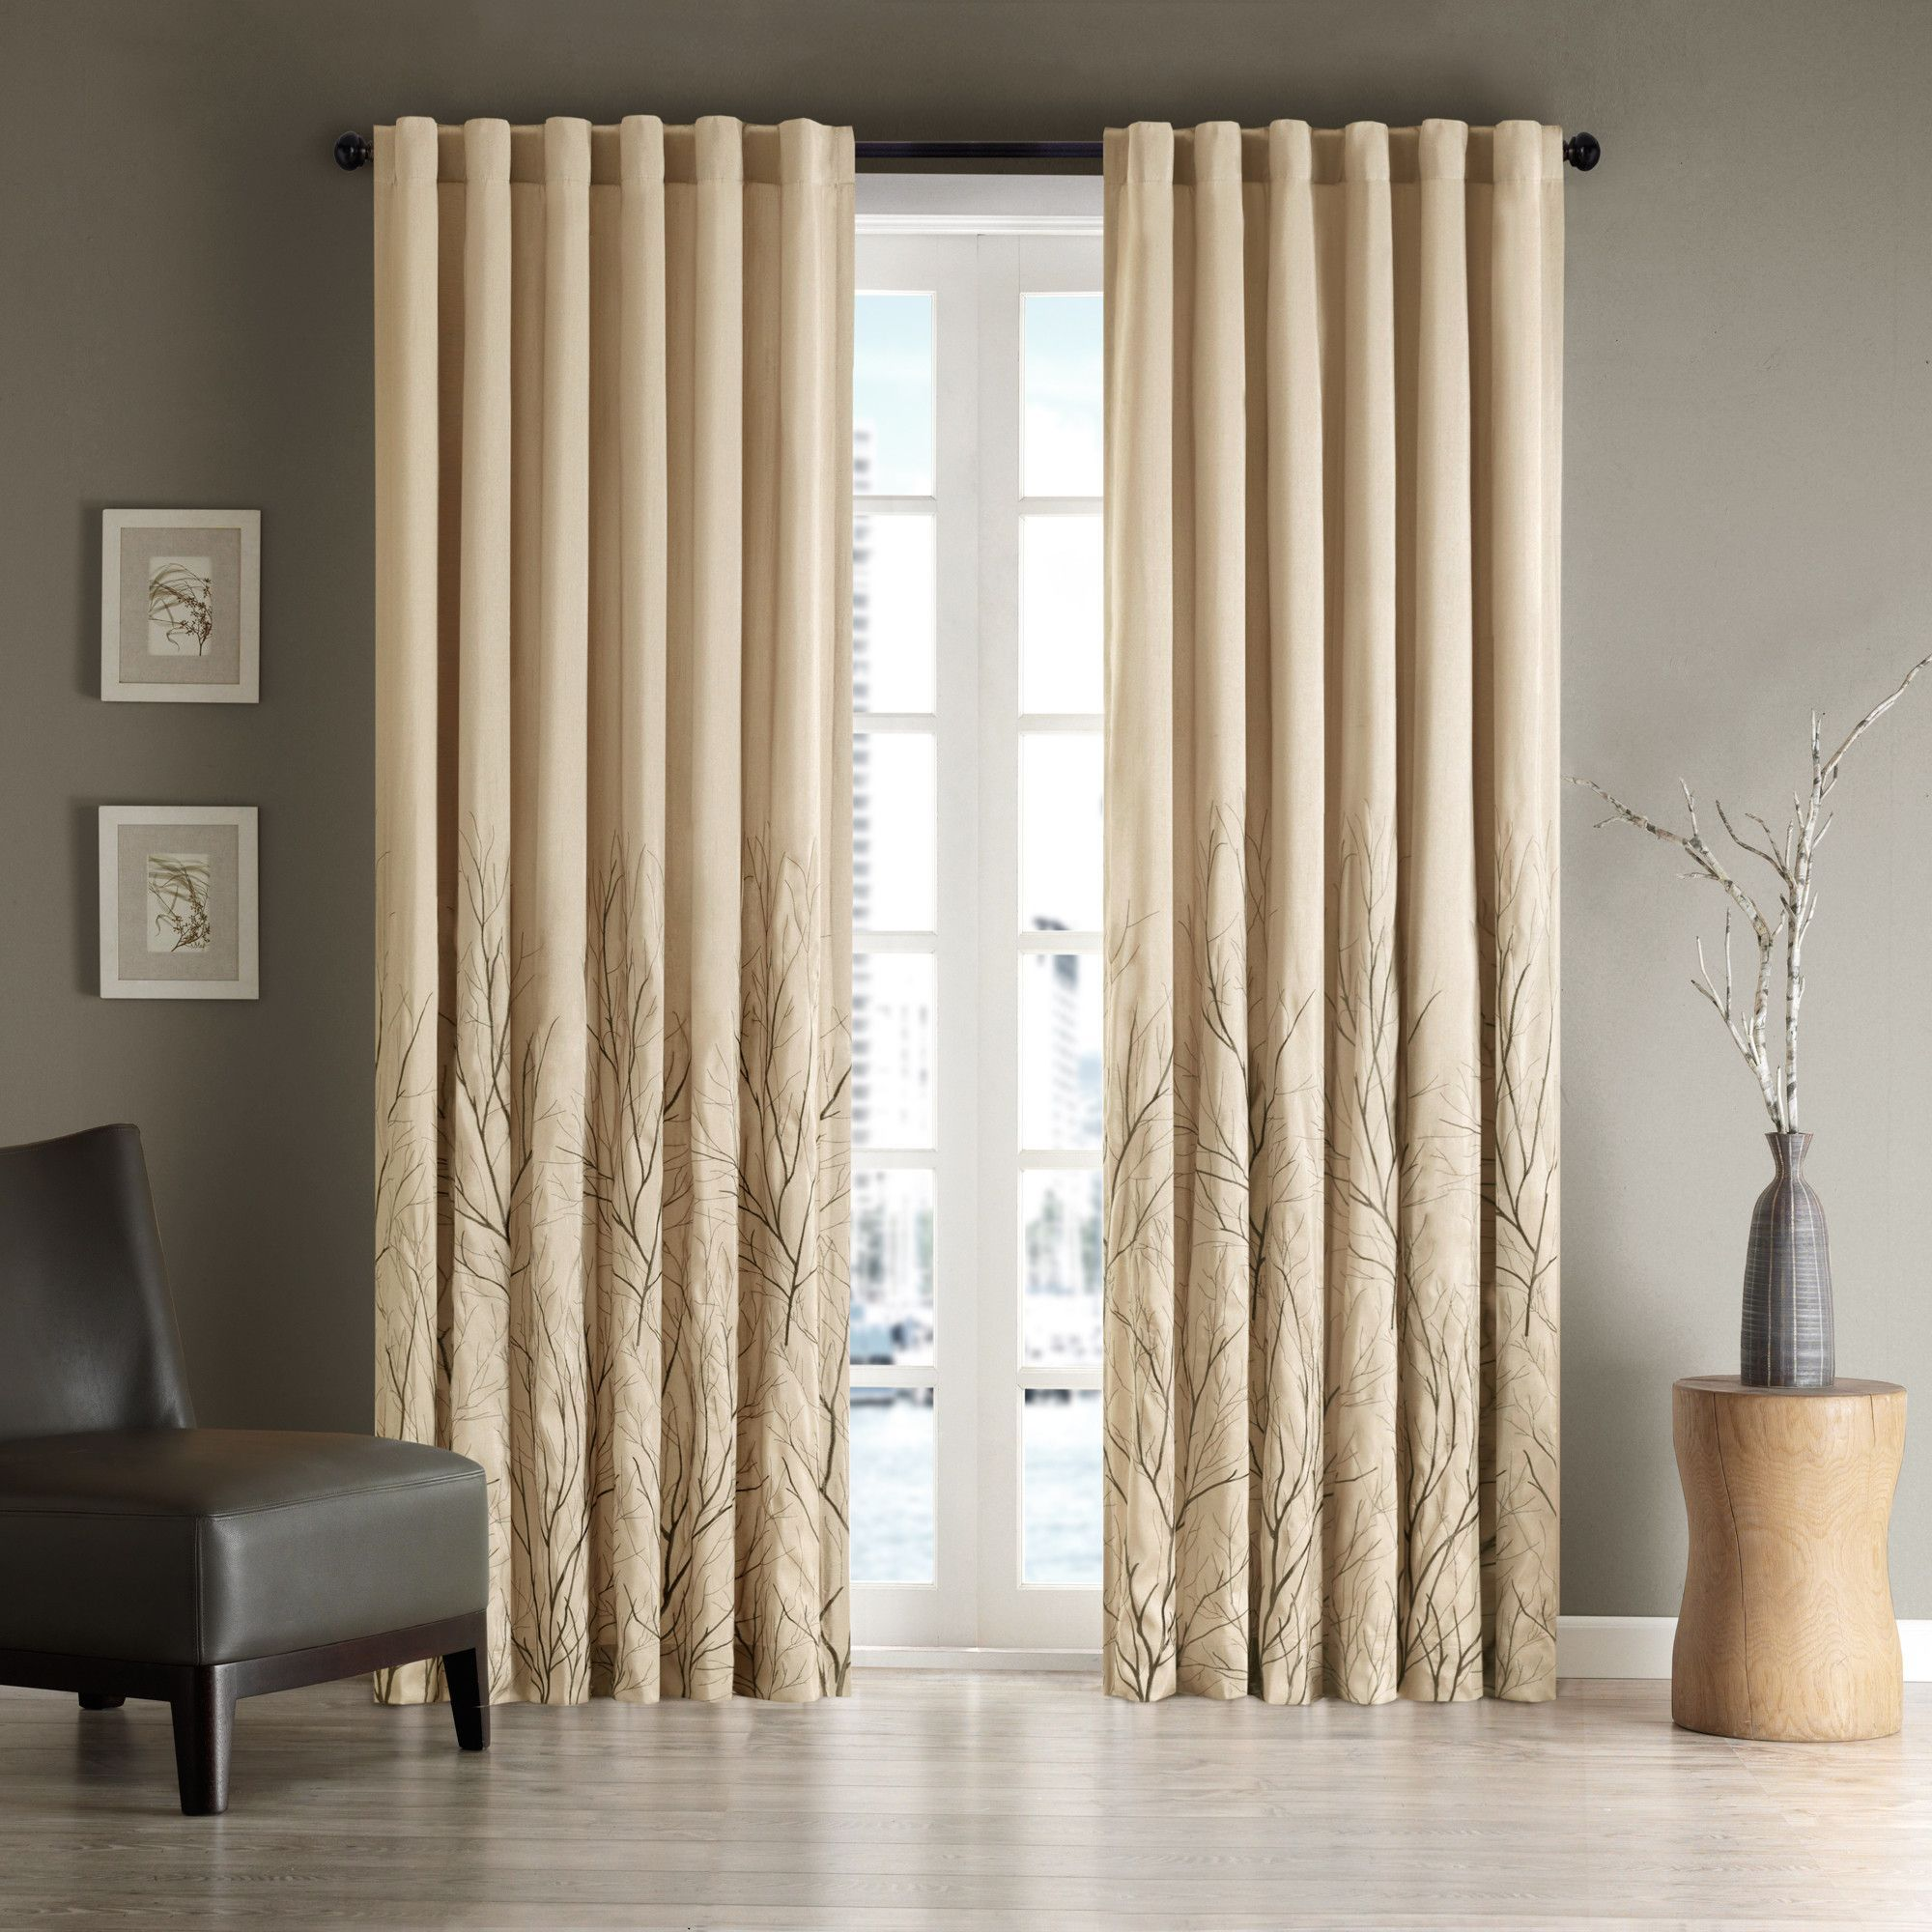 Dining room window coverings  andora window single curtain panel  products  pinterest  products